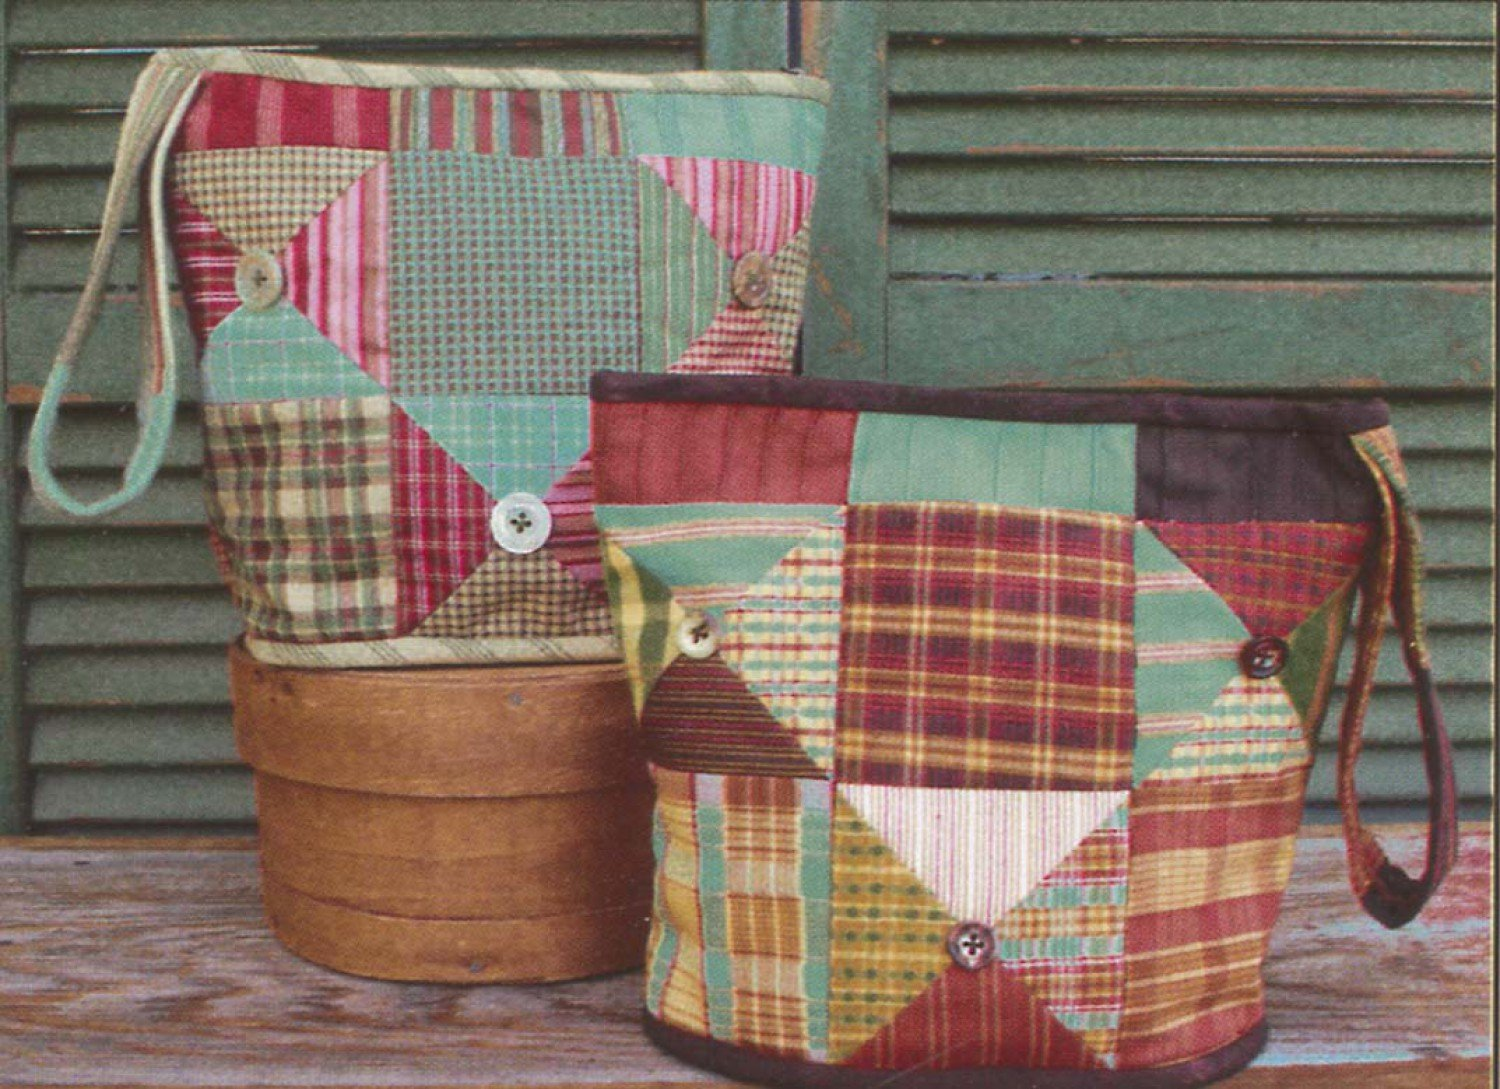 Little Scraps Button Bag by This & That 8 3/4 X 10 3/4